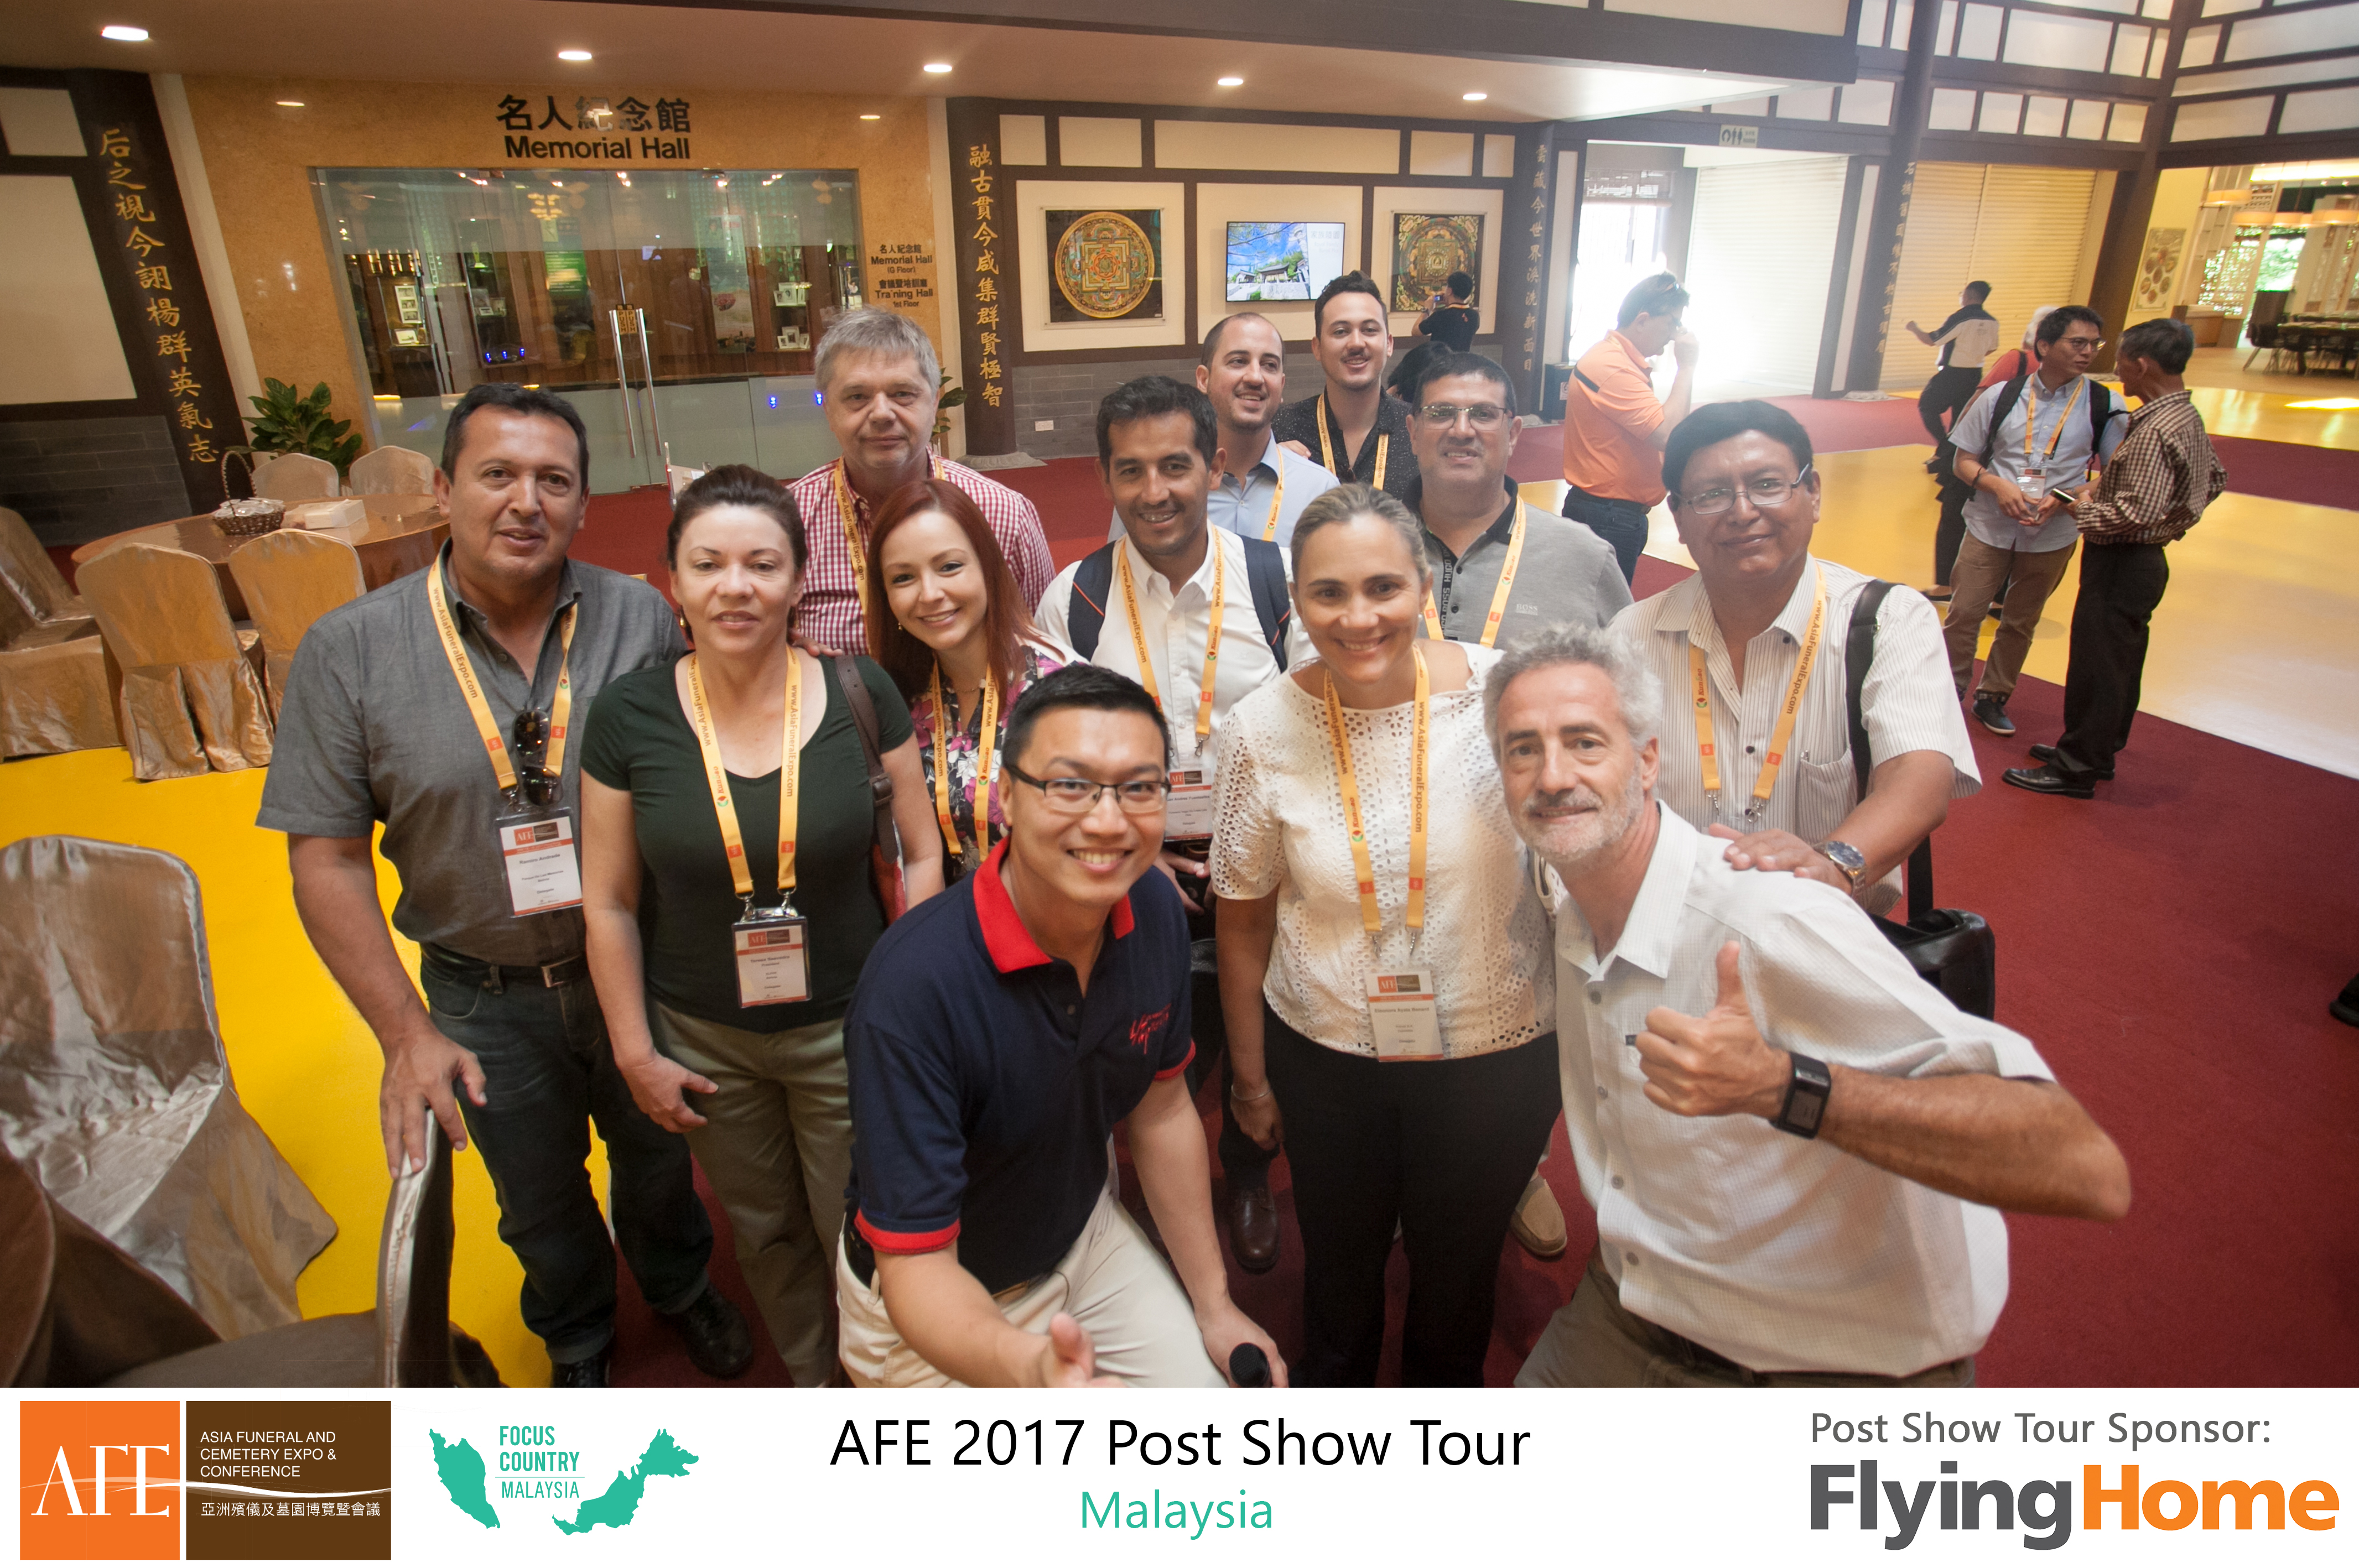 AFE Post Show Tour 2017 Day 2 - 05